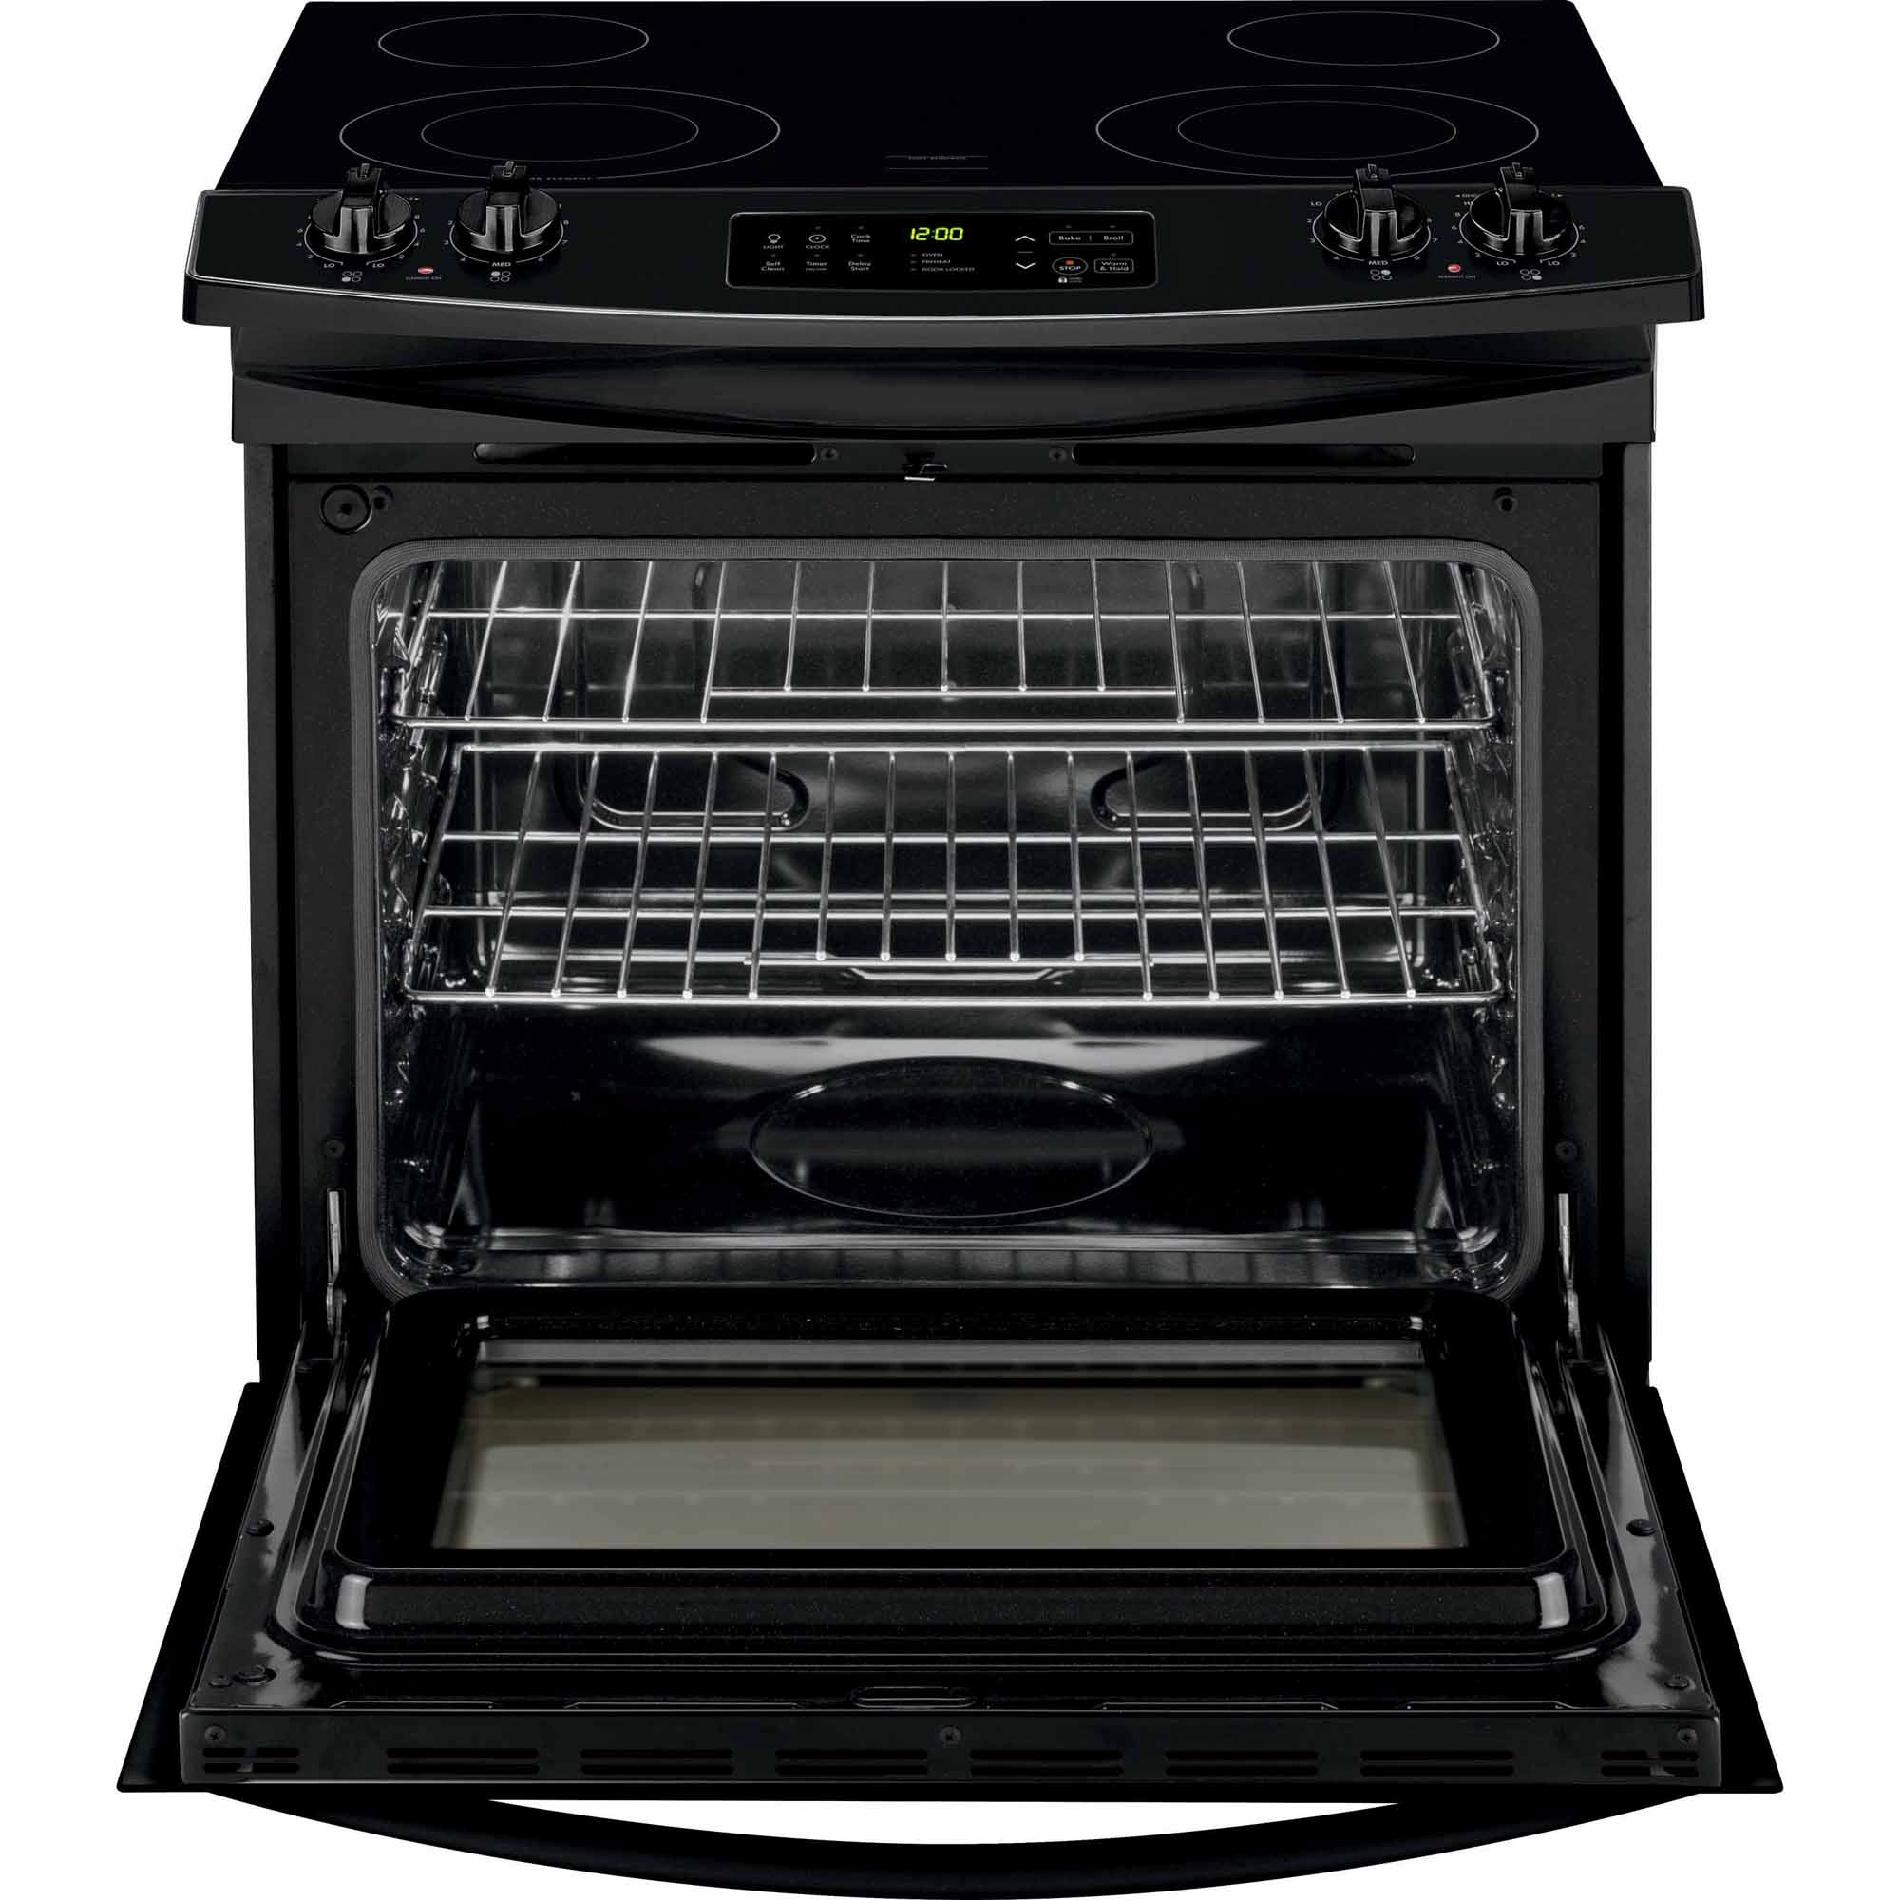 Kenmore 42539 4.6 cu. ft. Slide-In Electric Range w/ Ceramic Smoothtop Cooktop - Black